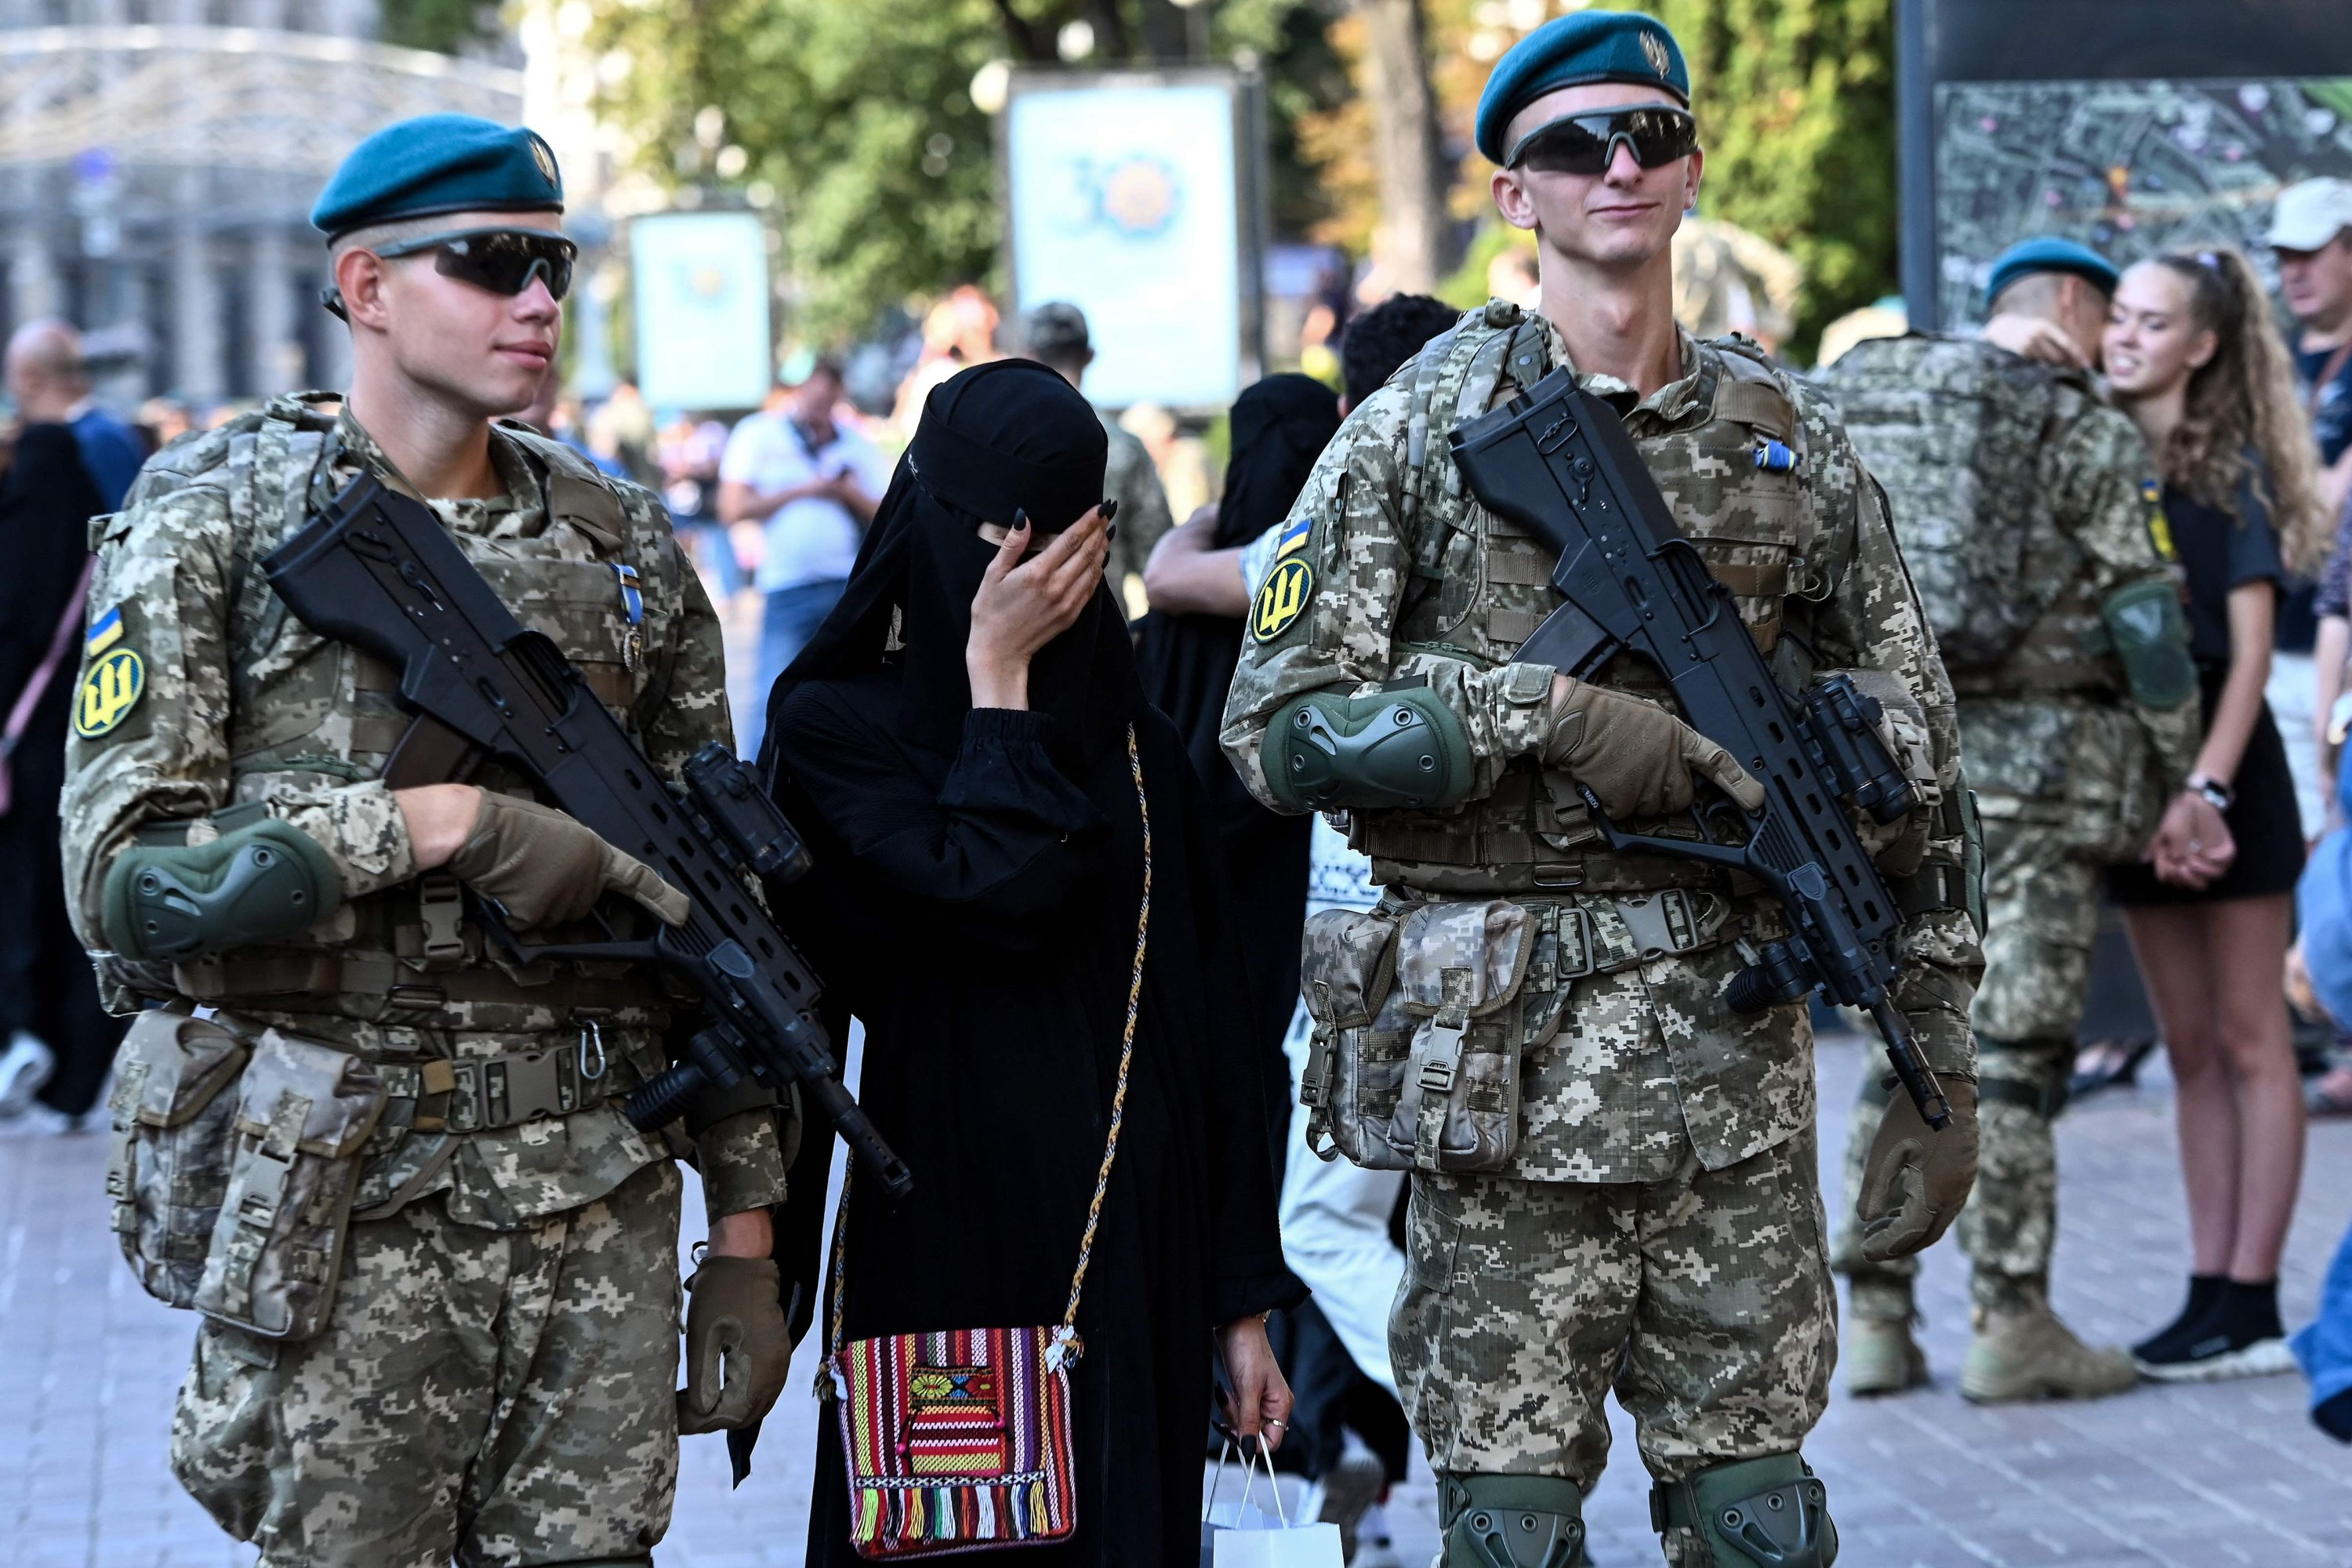 A tourist from the Middle East poses for a photo with Ukrainian officers as they take part in a rehearsal for a military parade for an Independence Day celebration in Kyiv, Ukraine, Aug. 20, 2021. (AFP Photo)